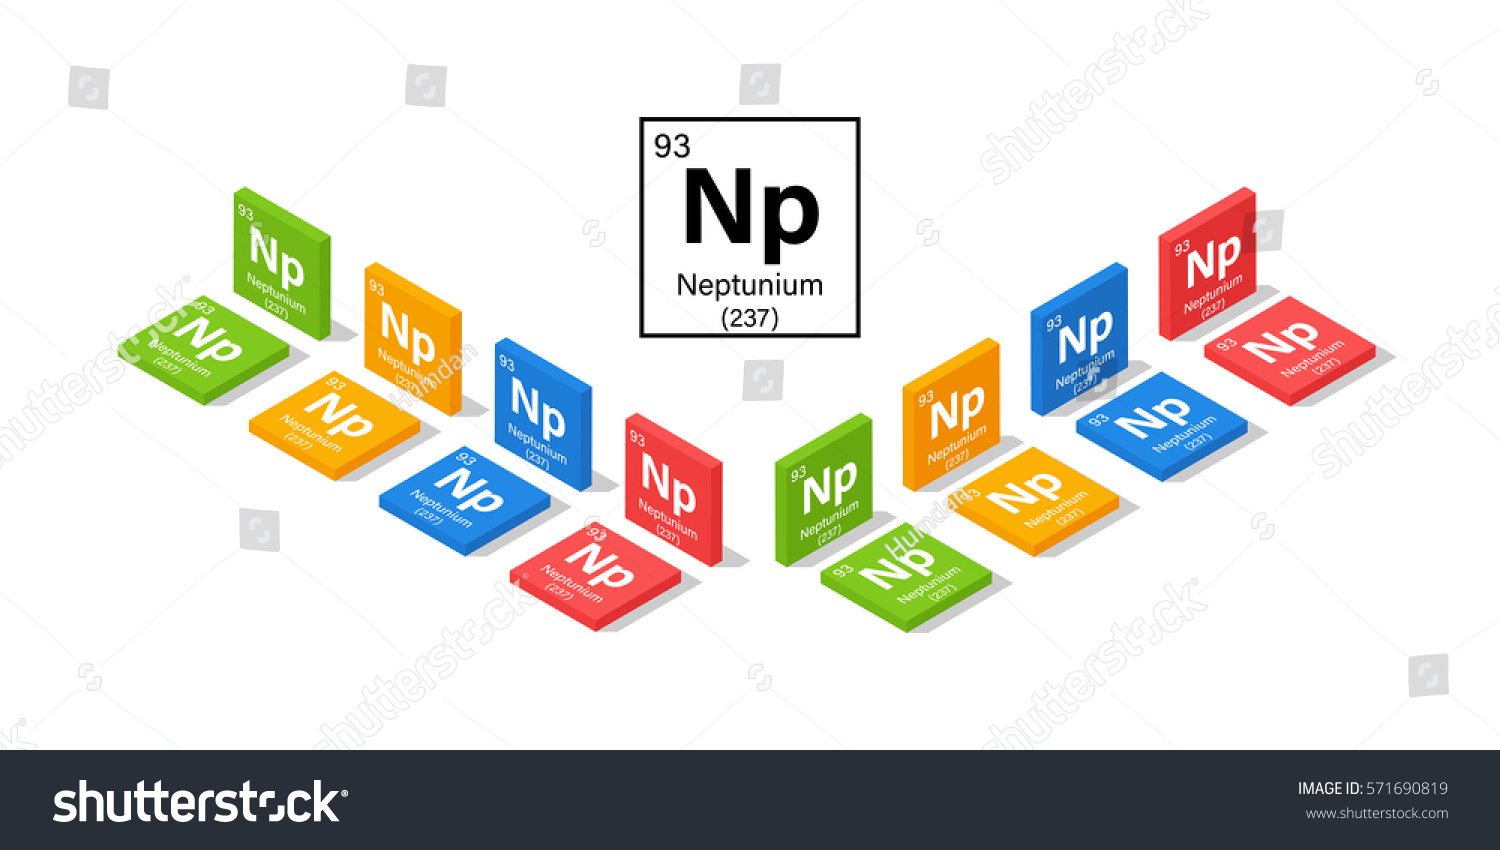 The periodic table song slow image collections periodic table images the periodic table song slow image collections periodic table images the periodic table song slow image gamestrikefo Image collections